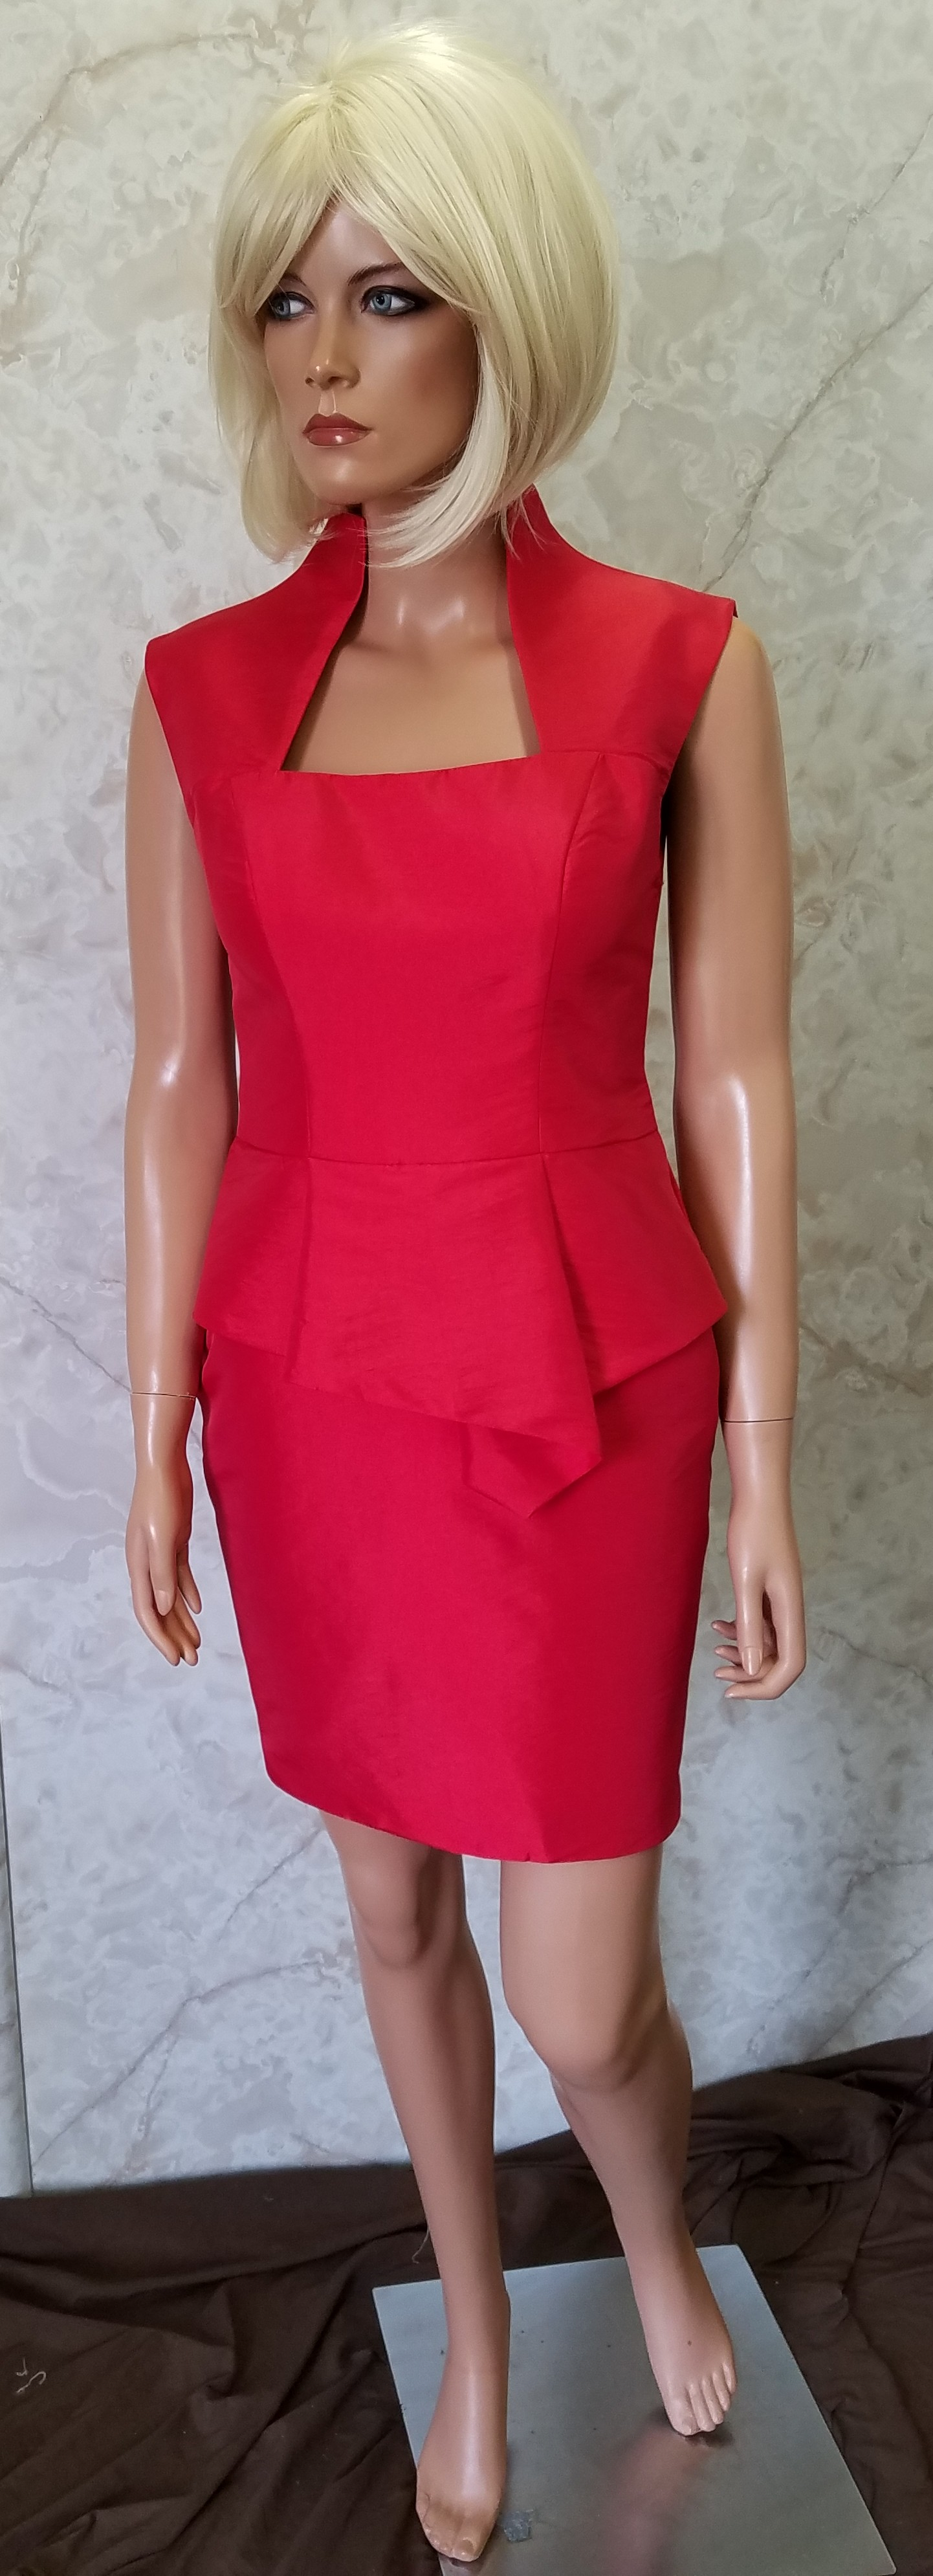 short red business dress